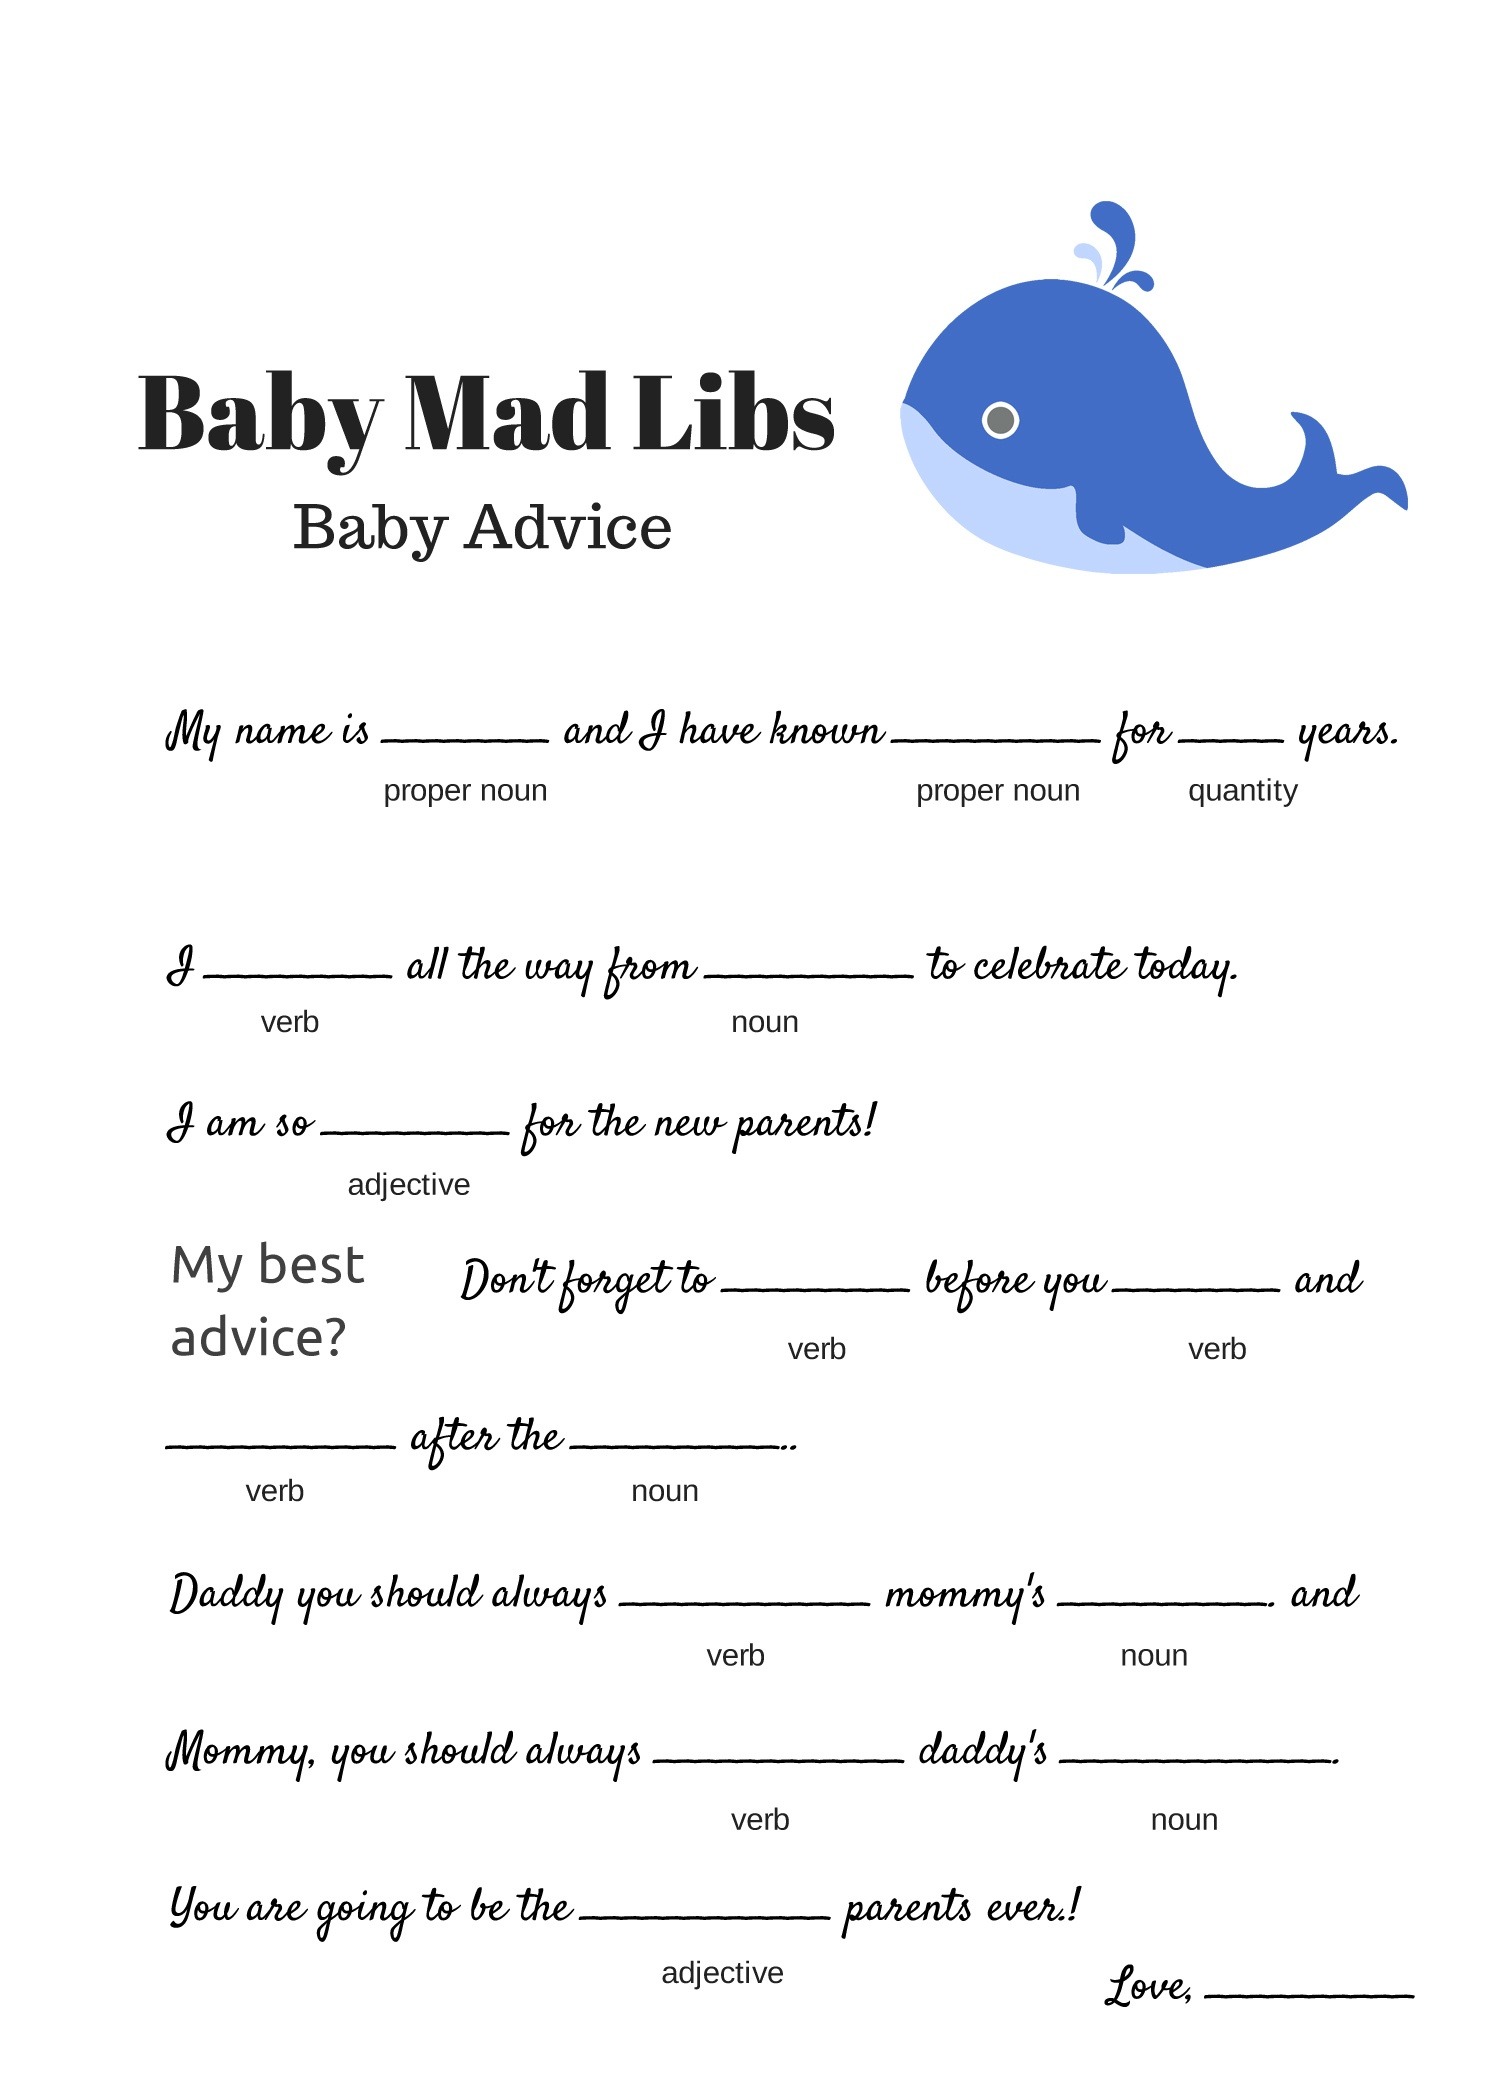 Free Baby Mad Libs Game - Baby Advice - Baby Shower Ideas - Themes - Free Printable Baby Shower Games For Twins